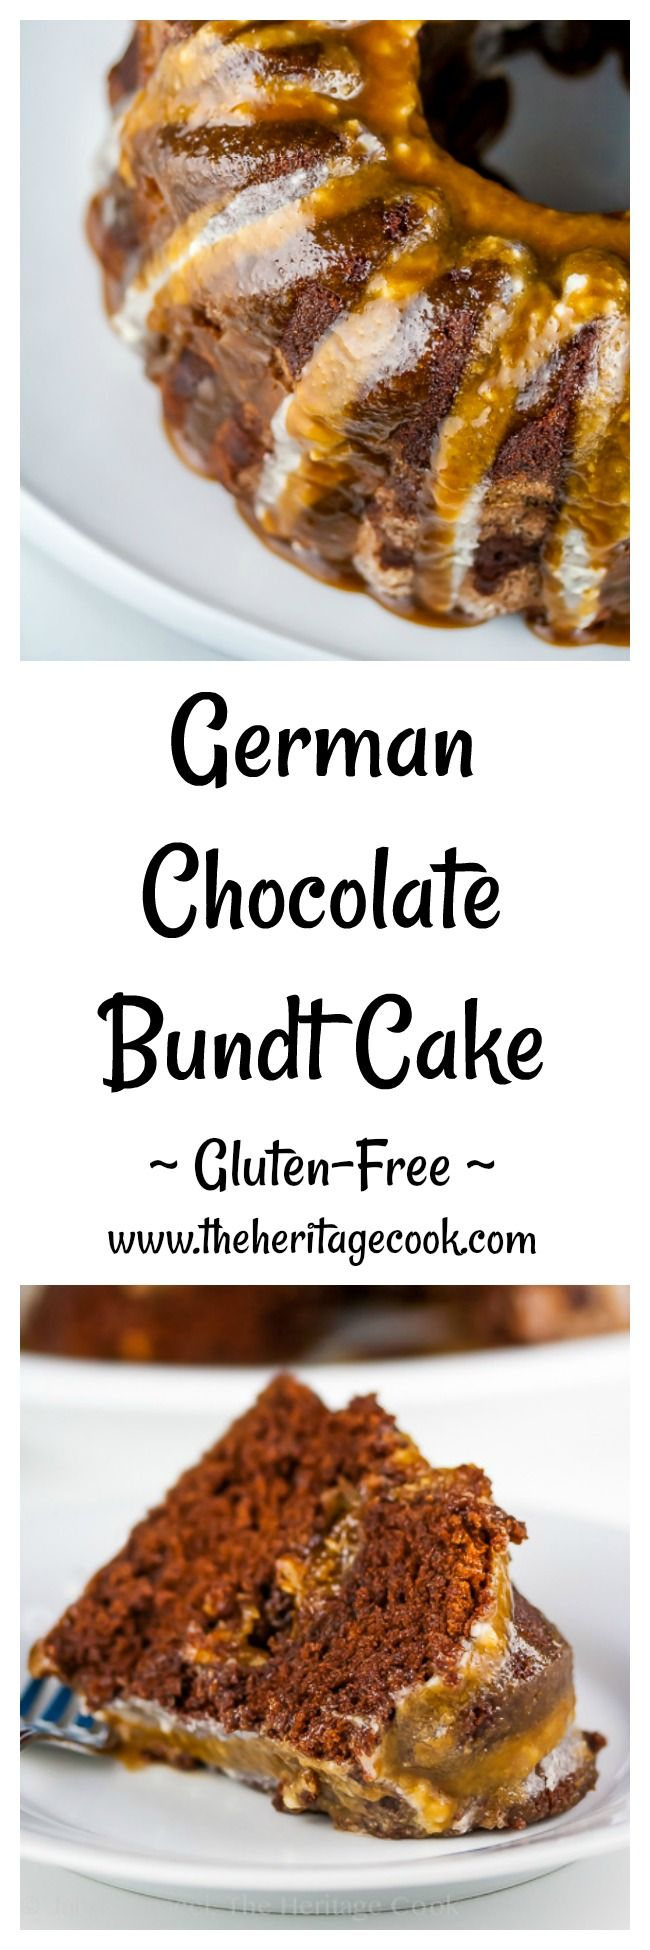 Today we've got a German Chocolate Surprise Bundt Cake for you. The ordinary frosting is hidden inside - so fun when you cut into the cake and discover its surprise! A double glaze is a fun decoration. Rich & decadent, you will love it!  Jane Bonacci, The Heritage Cook!